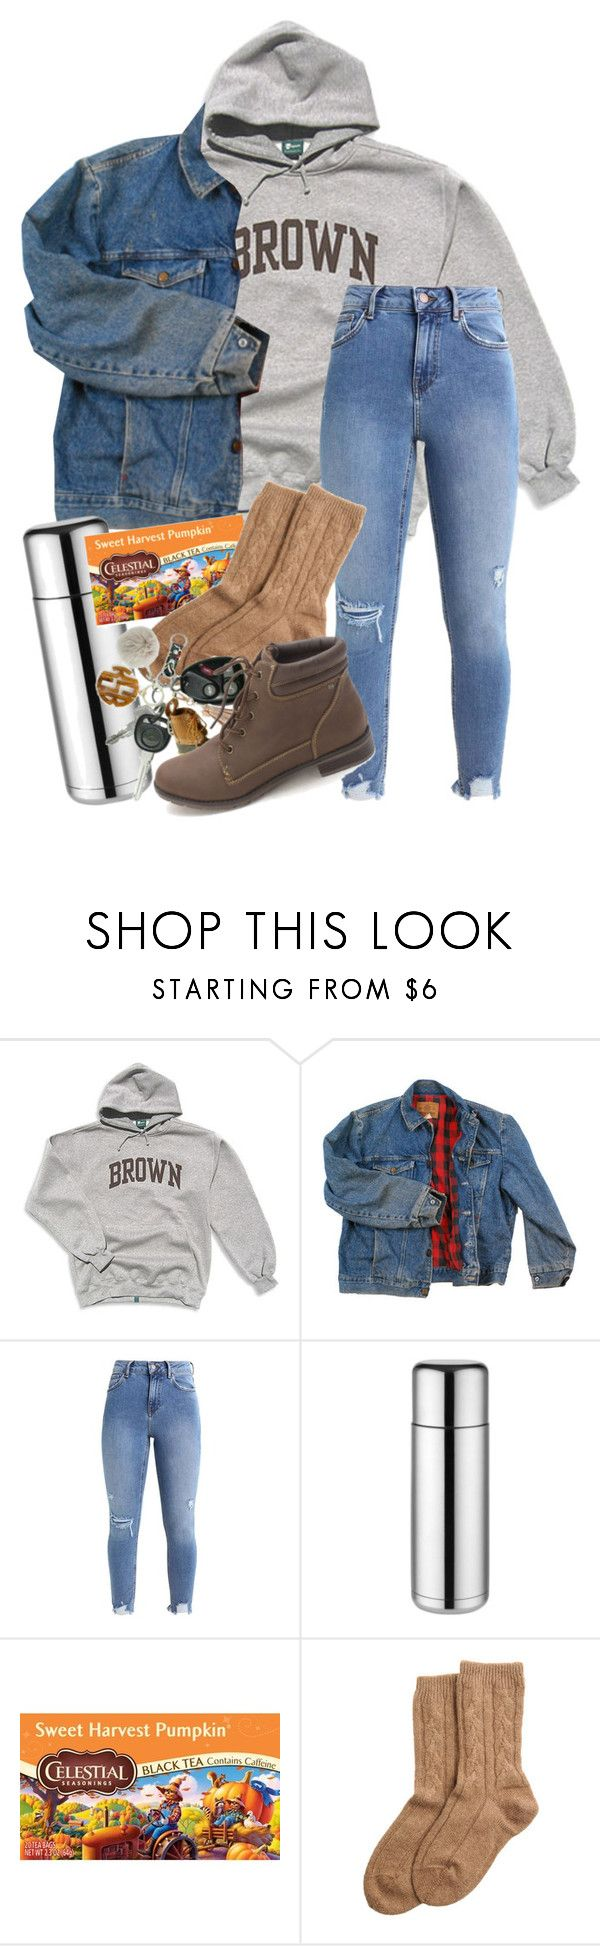 """""""It is SO cold"""" by kkkathy ❤ liked on Polyvore featuring Wrangler, Alessi, Celestial Seasonings, Bamford and Sporto"""